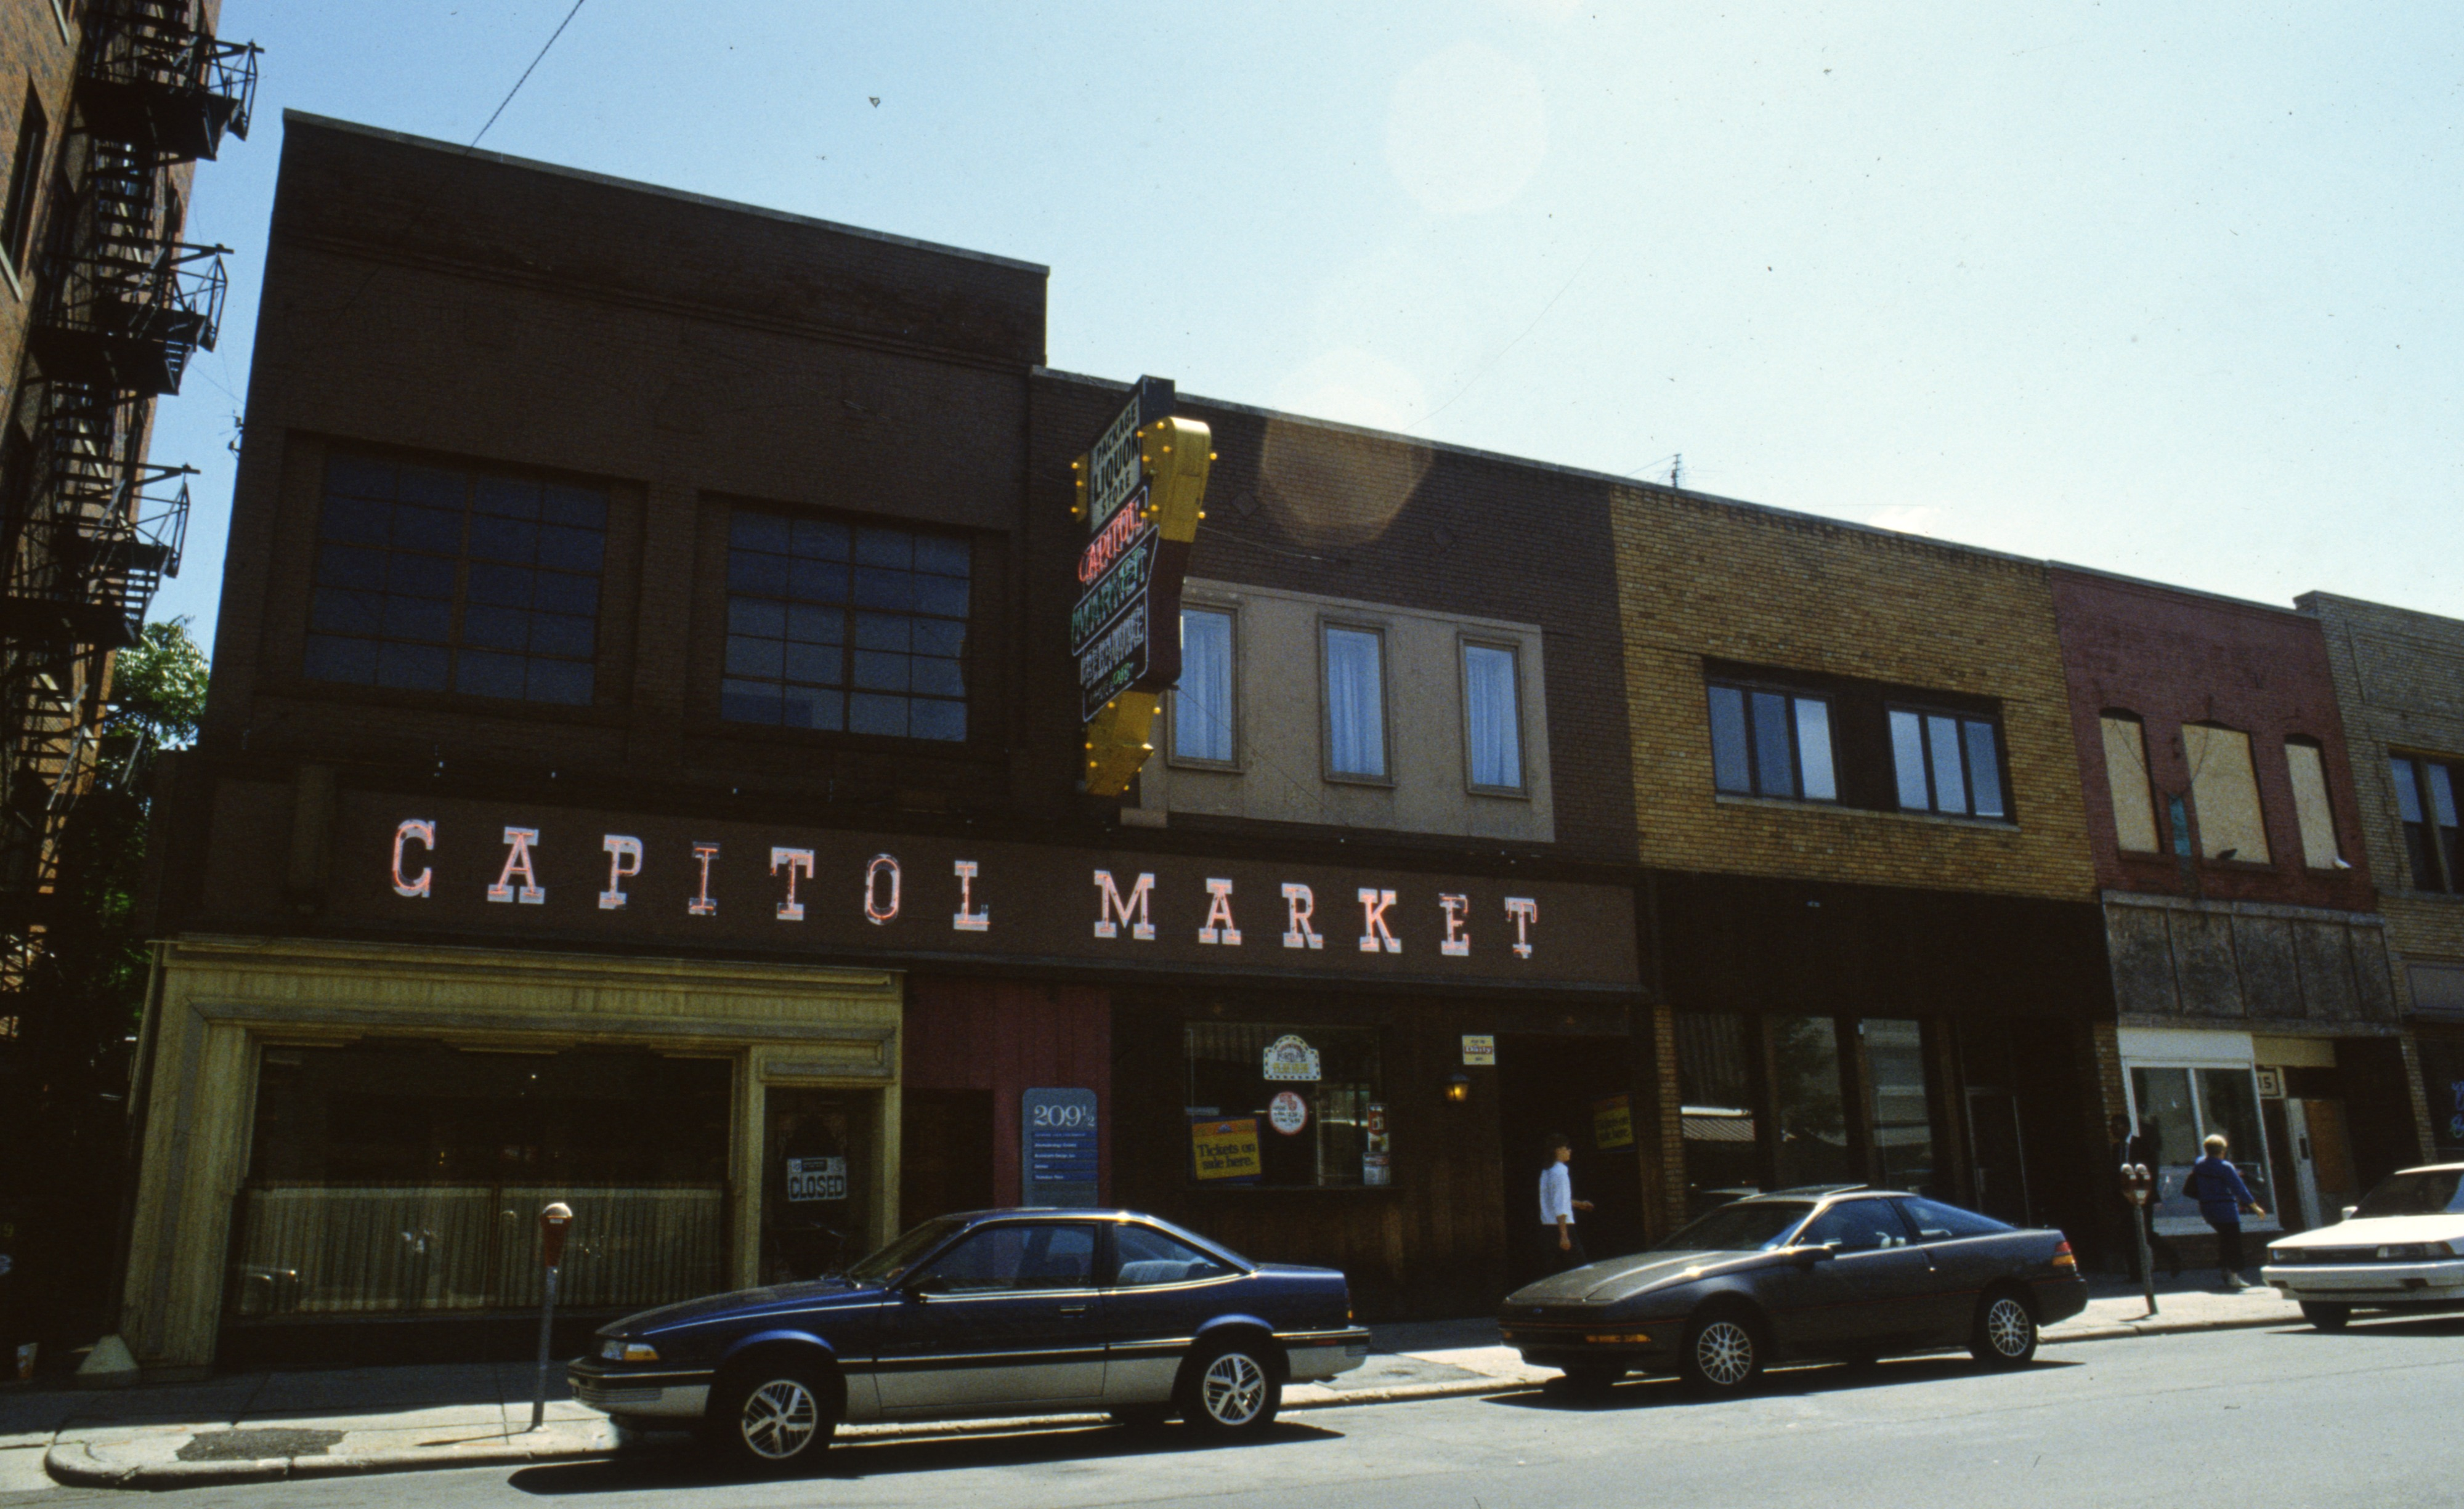 Capitol Market A Bright Spot On Fourth Avenue, August 1989 image